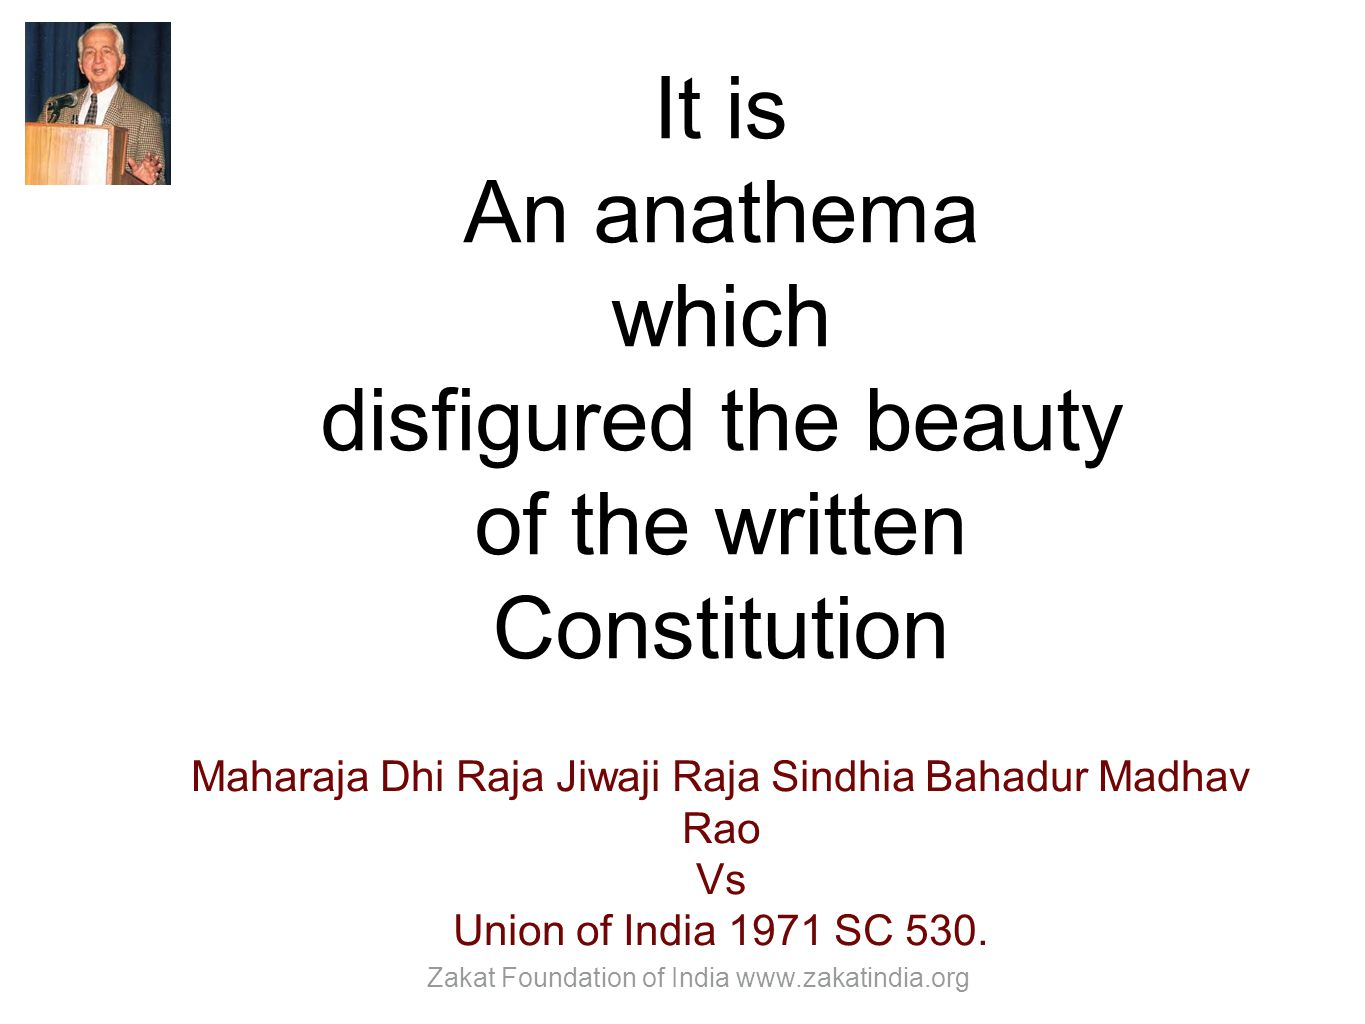 It is An anathema which disfigured the beauty of the written Constitution Maharaja Dhi Raja Jiwaji Raja Sindhia Bahadur Madhav Rao Vs Union of India 1971 SC 530.